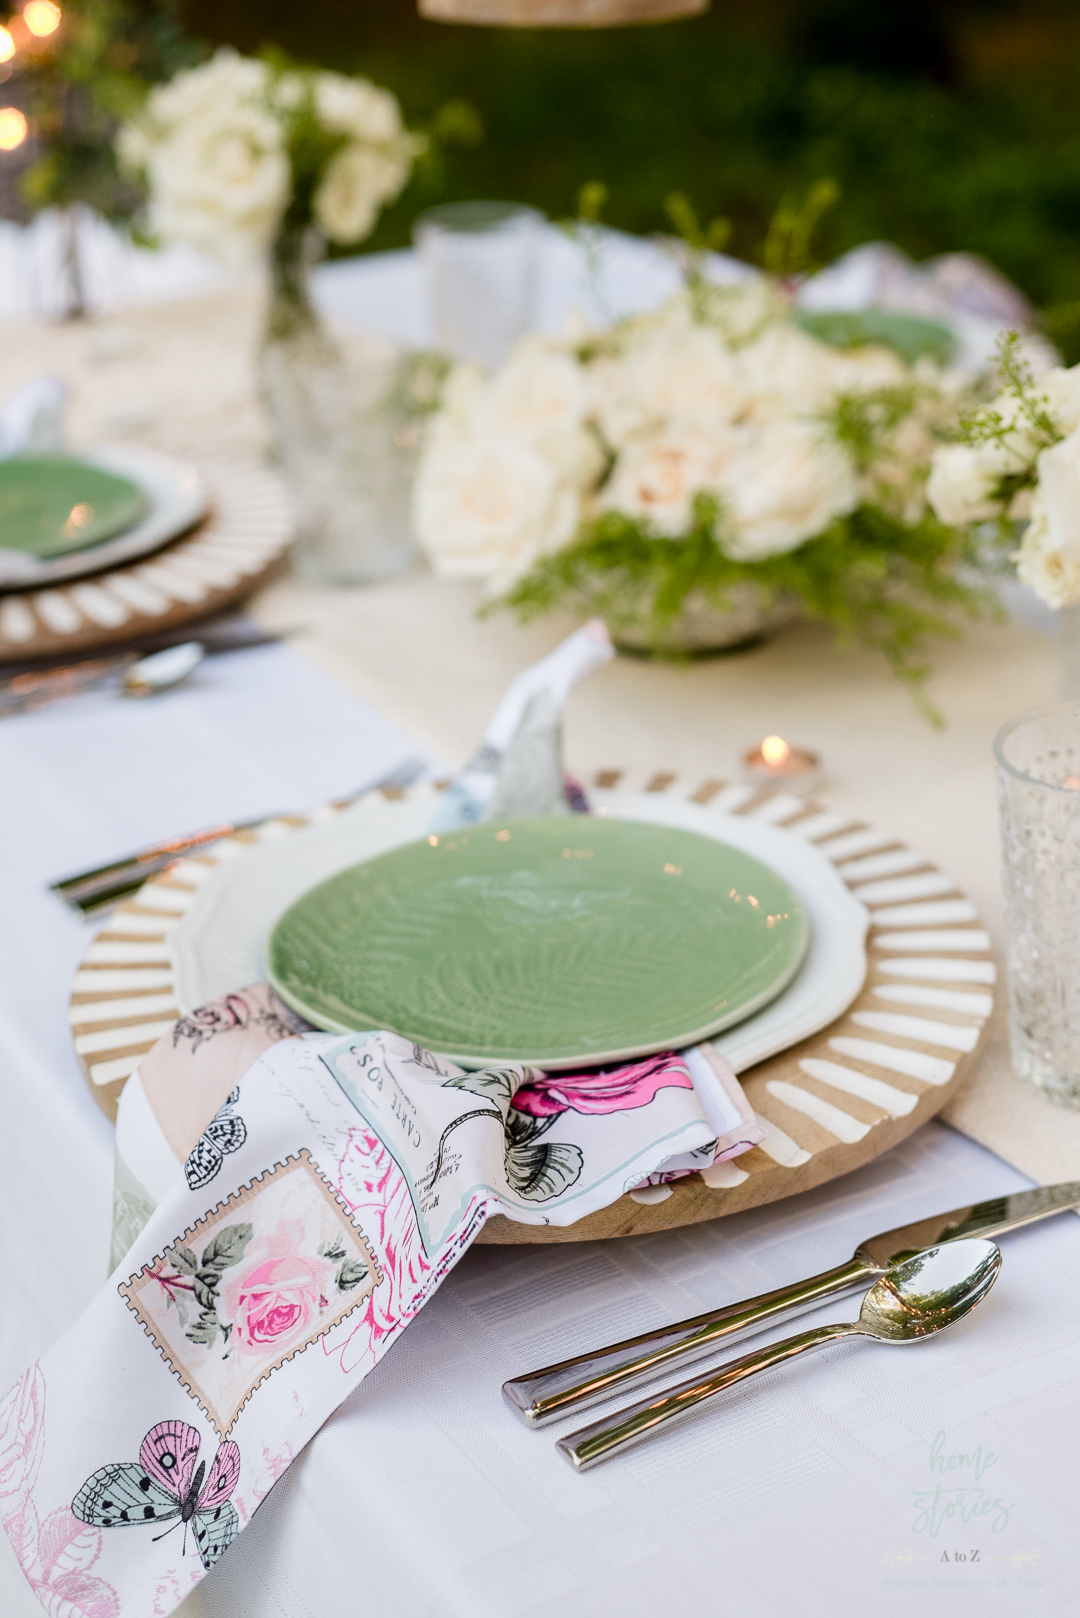 wood charger green plate floral napkin